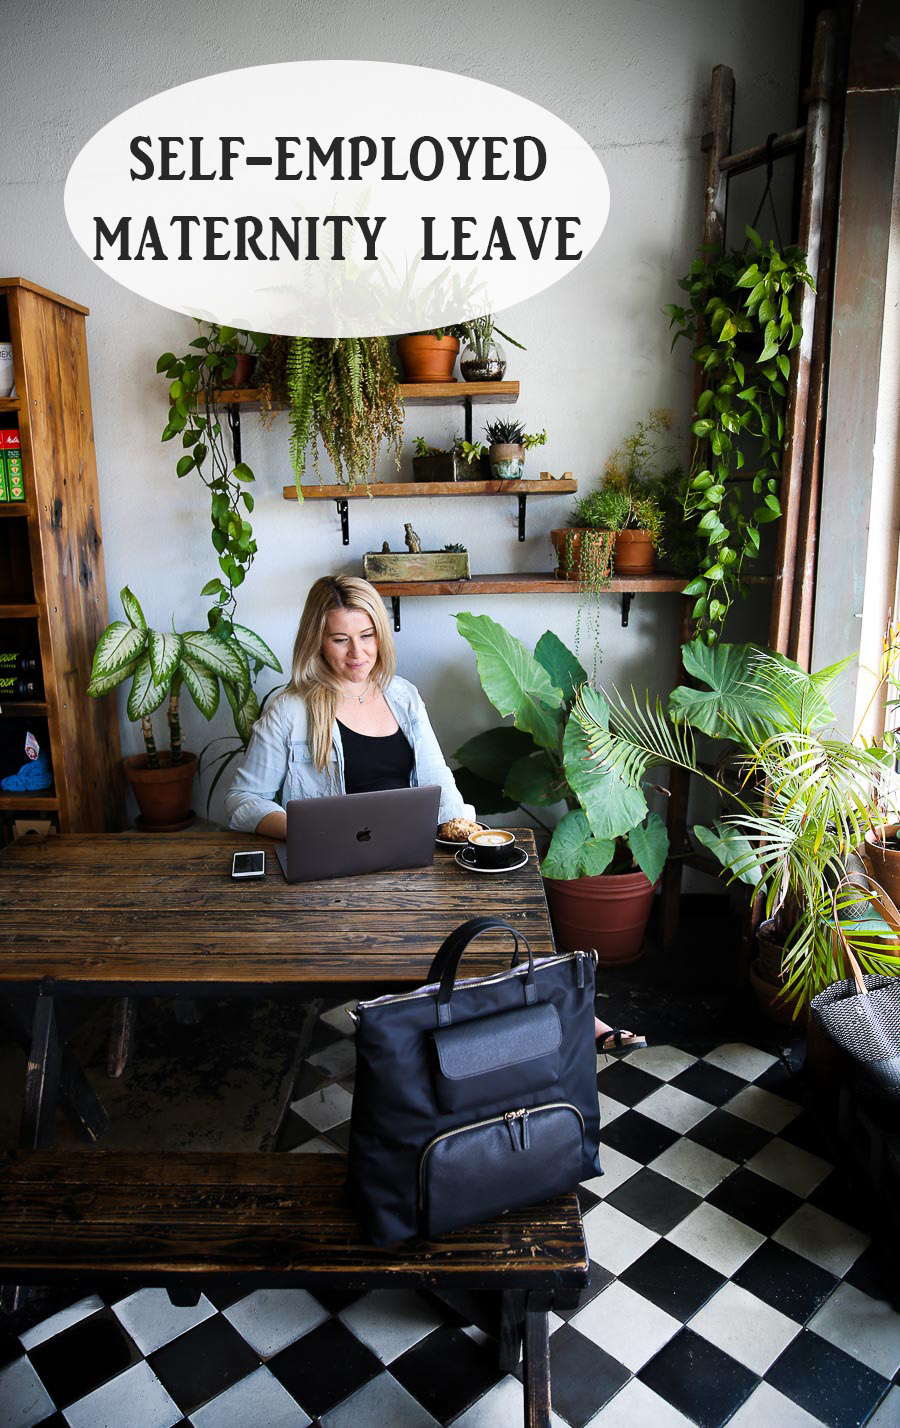 Self-Employed Maternity Leave. See what I'm doing about maternity leave as a blogger and small business owner. #maternity #maternityleave #pregnancy